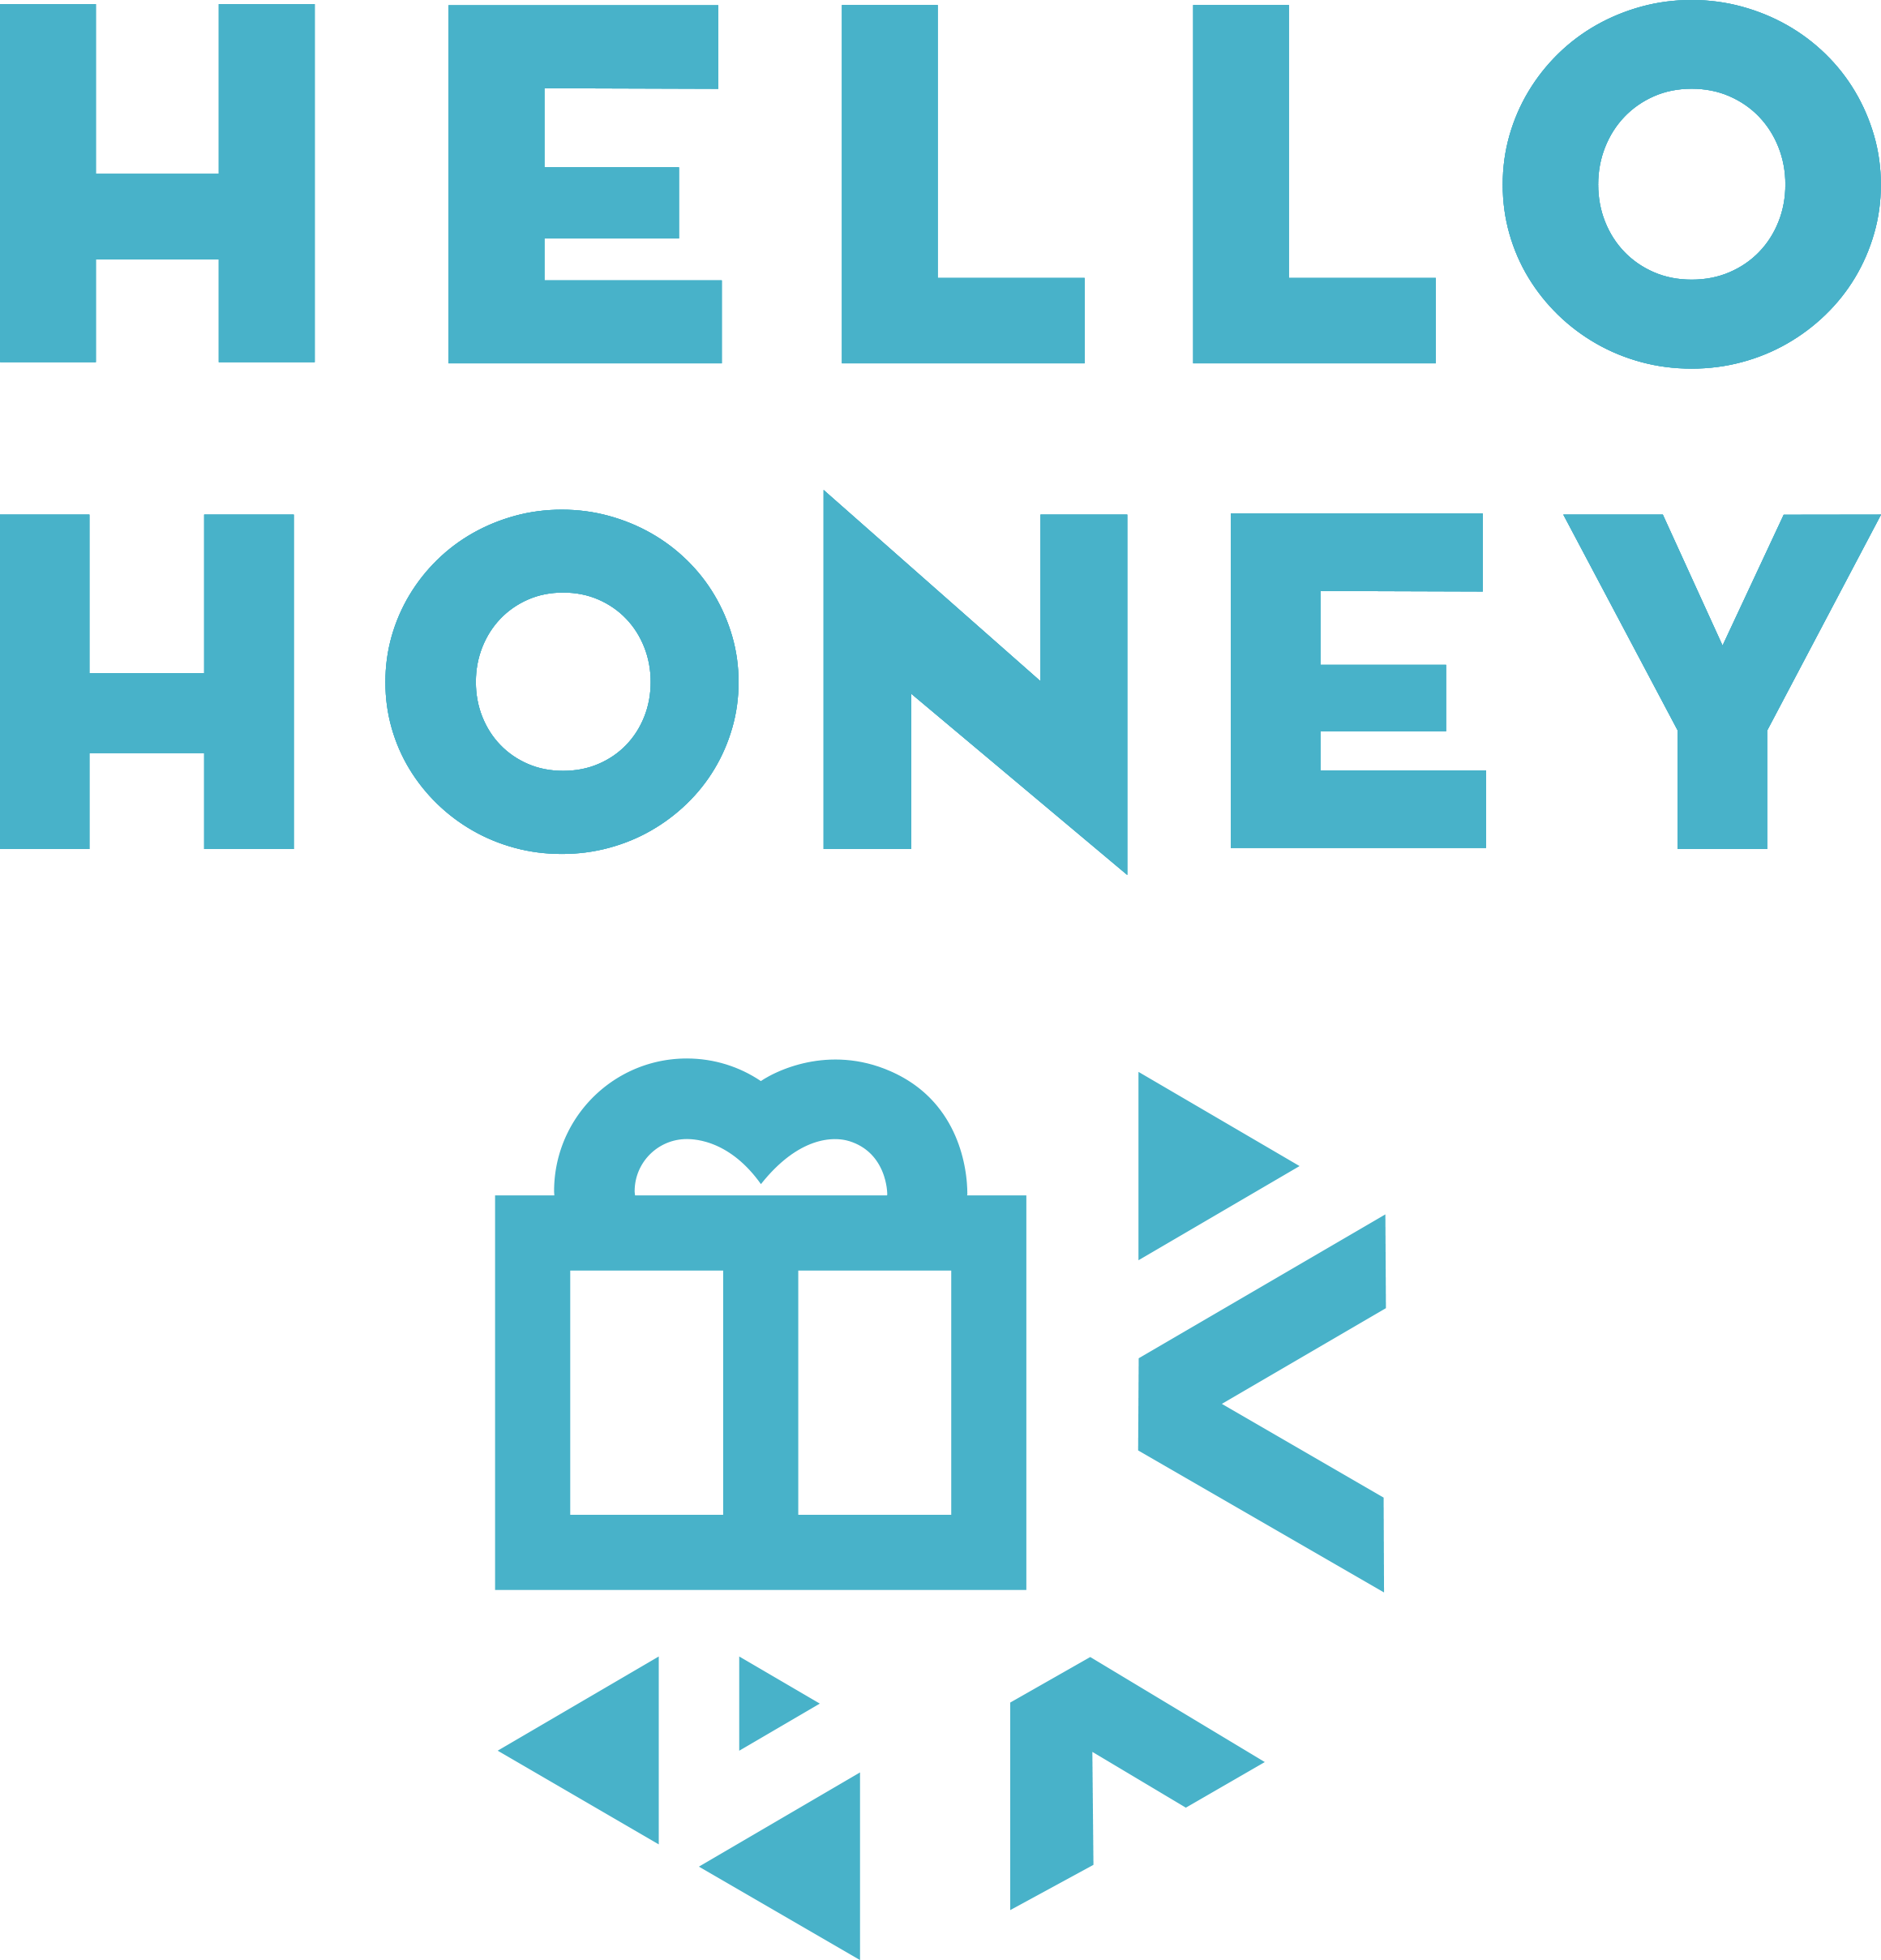 Hello honey (Hello, honey)